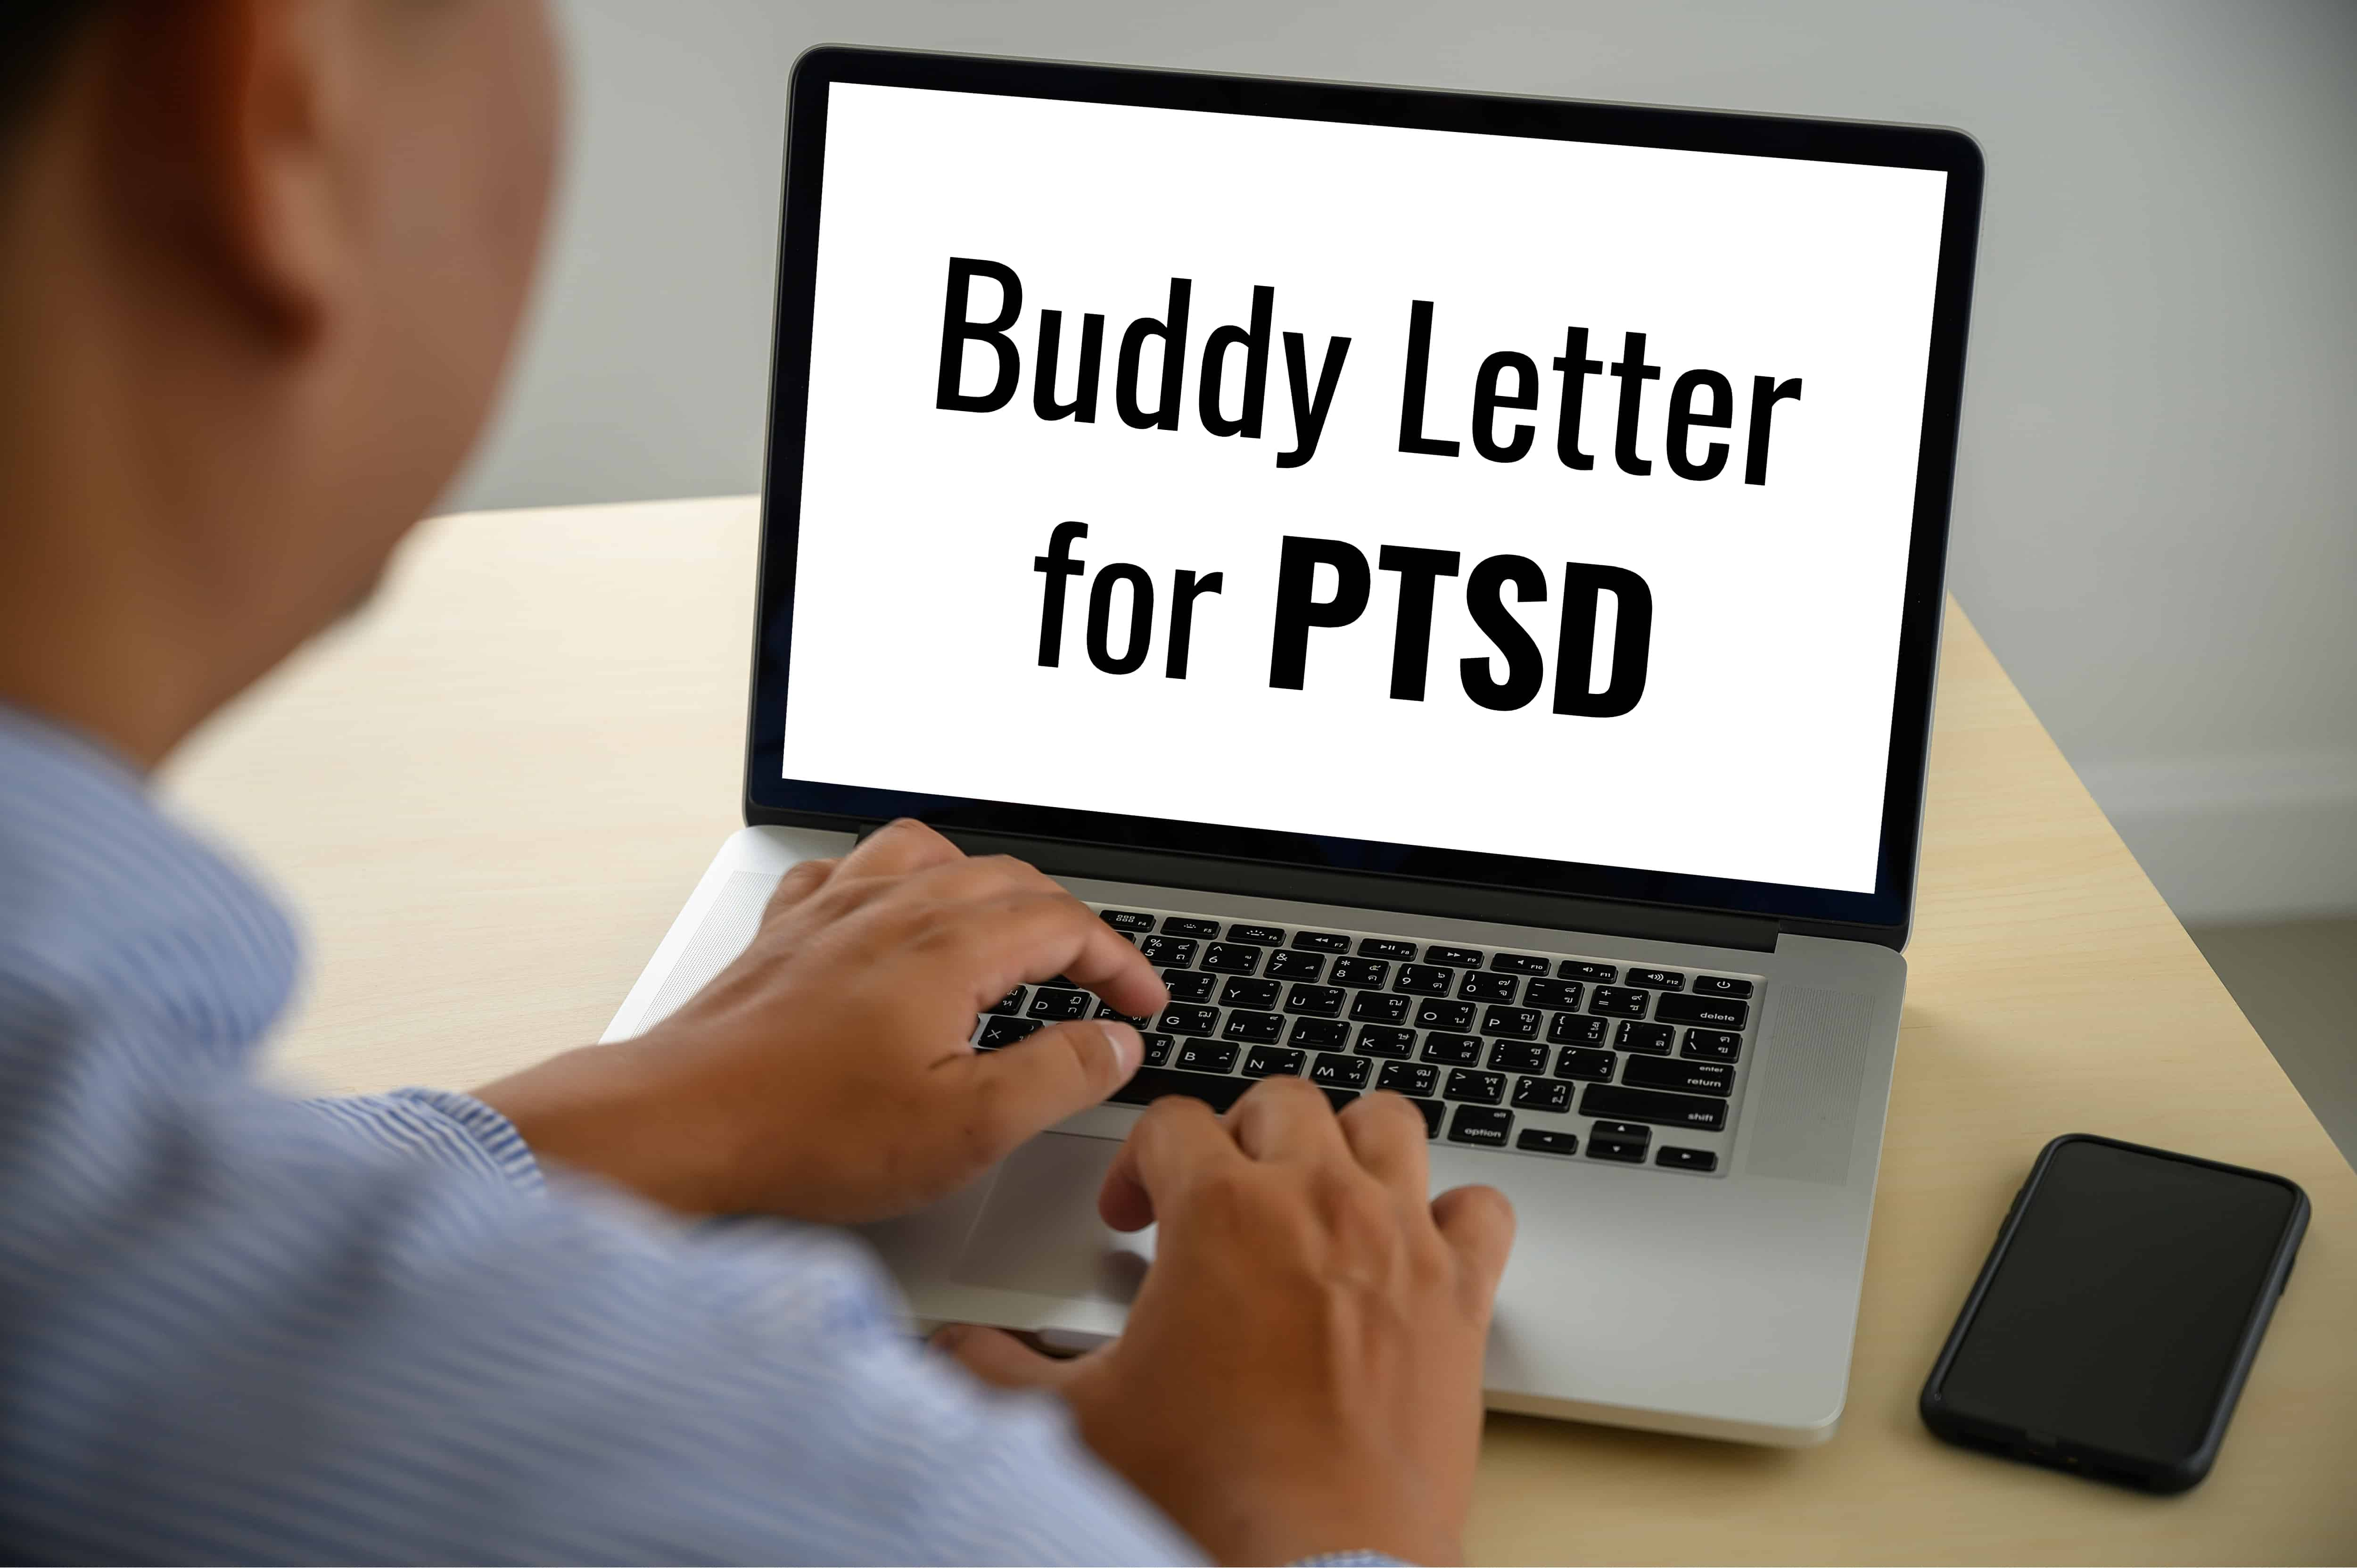 What is a Buddy Letter for PTSD? Buddy Letter for PTSD